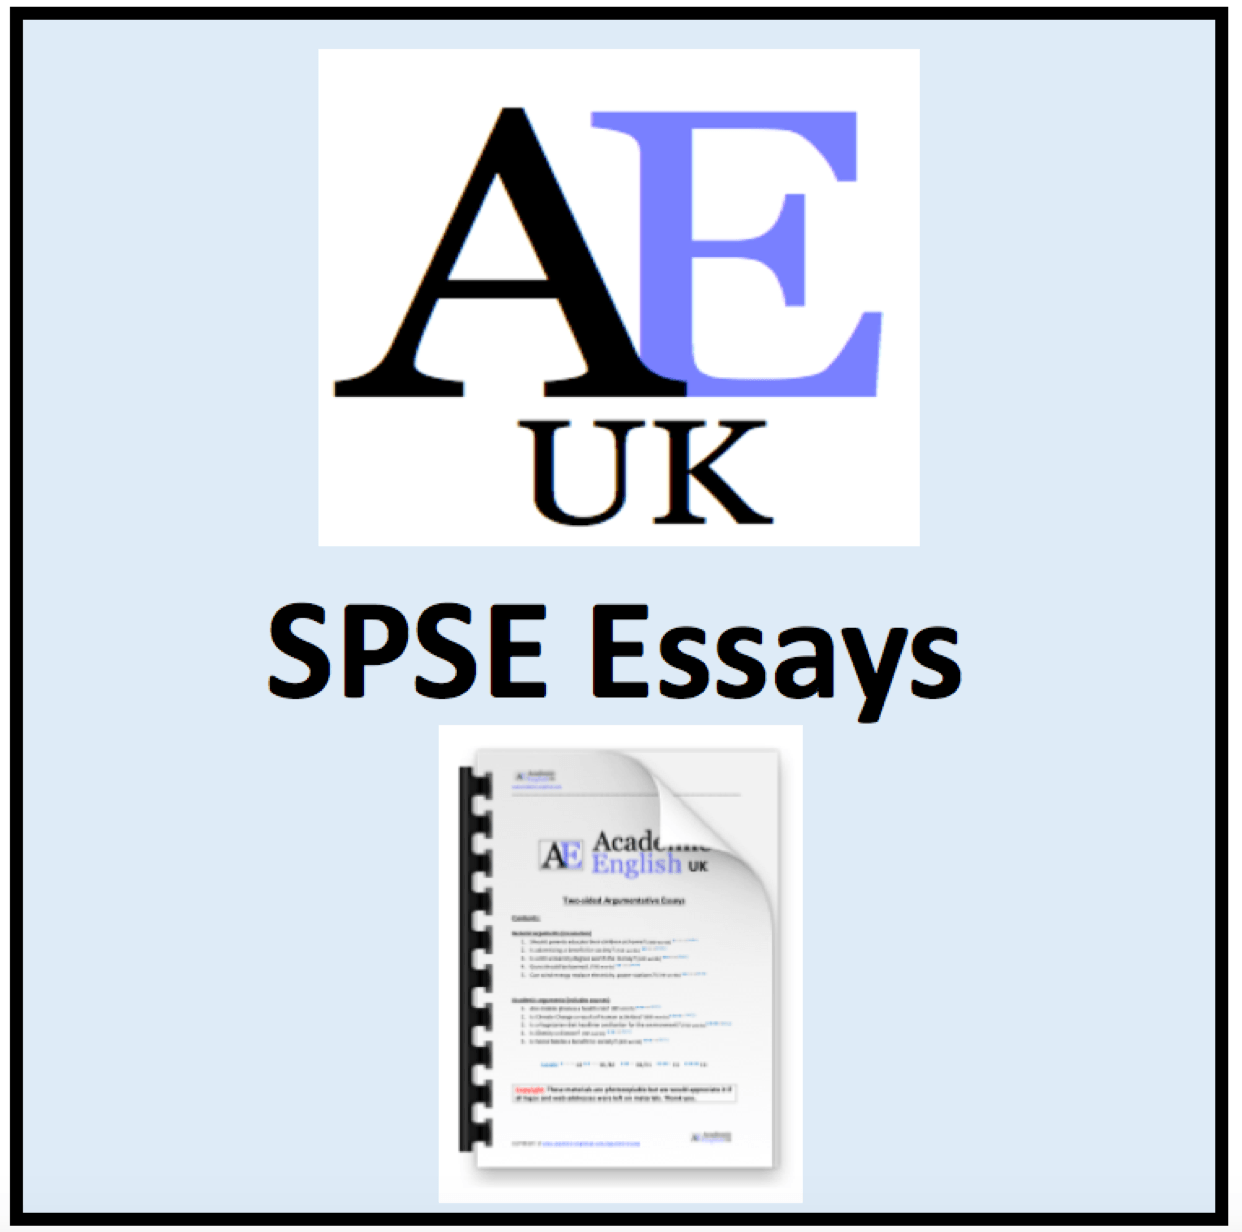 Academic essay solutions